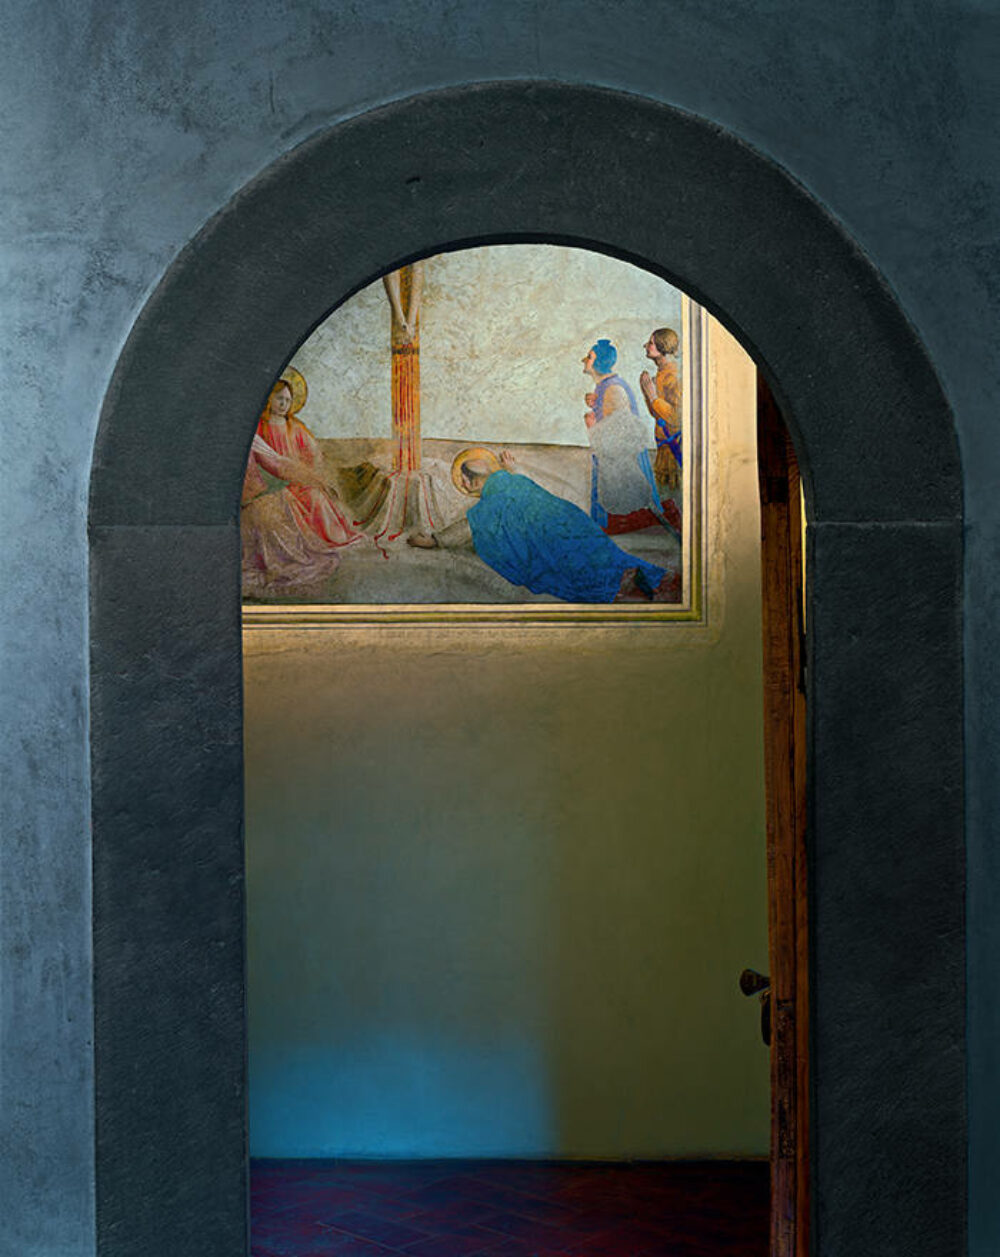 Crucifixion with Saint Dominic prostrate on the floor, by Fra Angelico, Museum of San Marco Convent, Florence, Italy